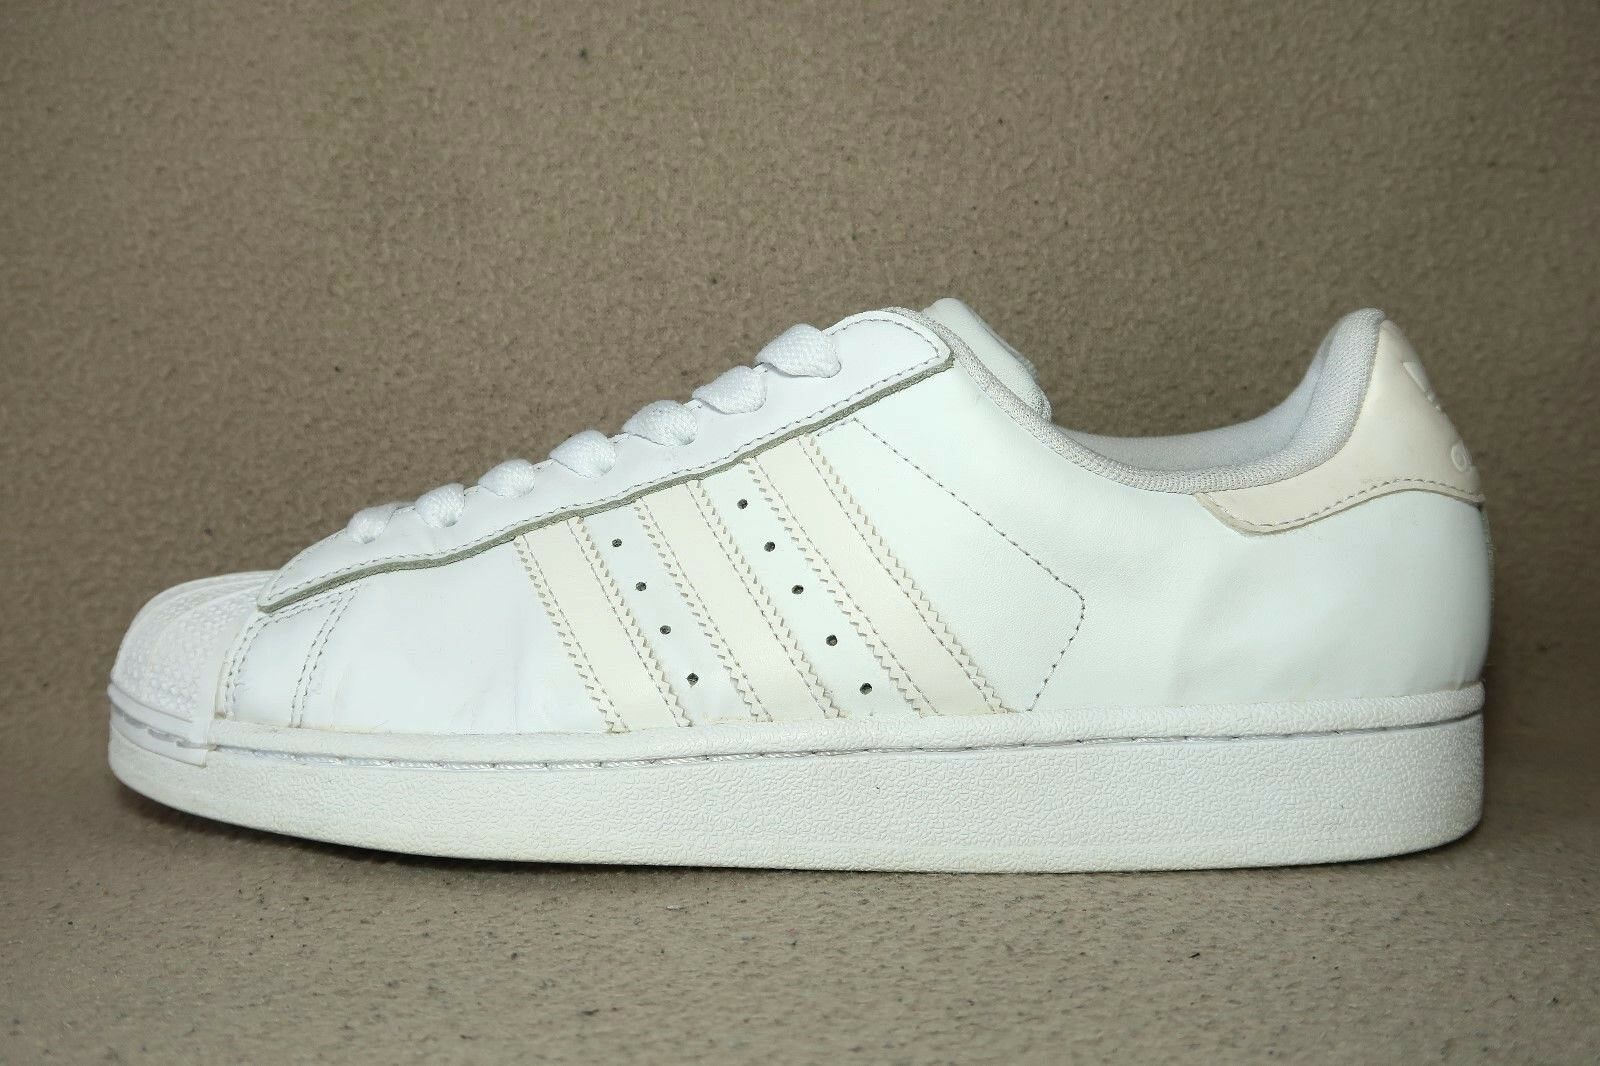 ADIDAS SUPERSTAR 80S Men's All White Leather Trainers UK Size 9  EU 43